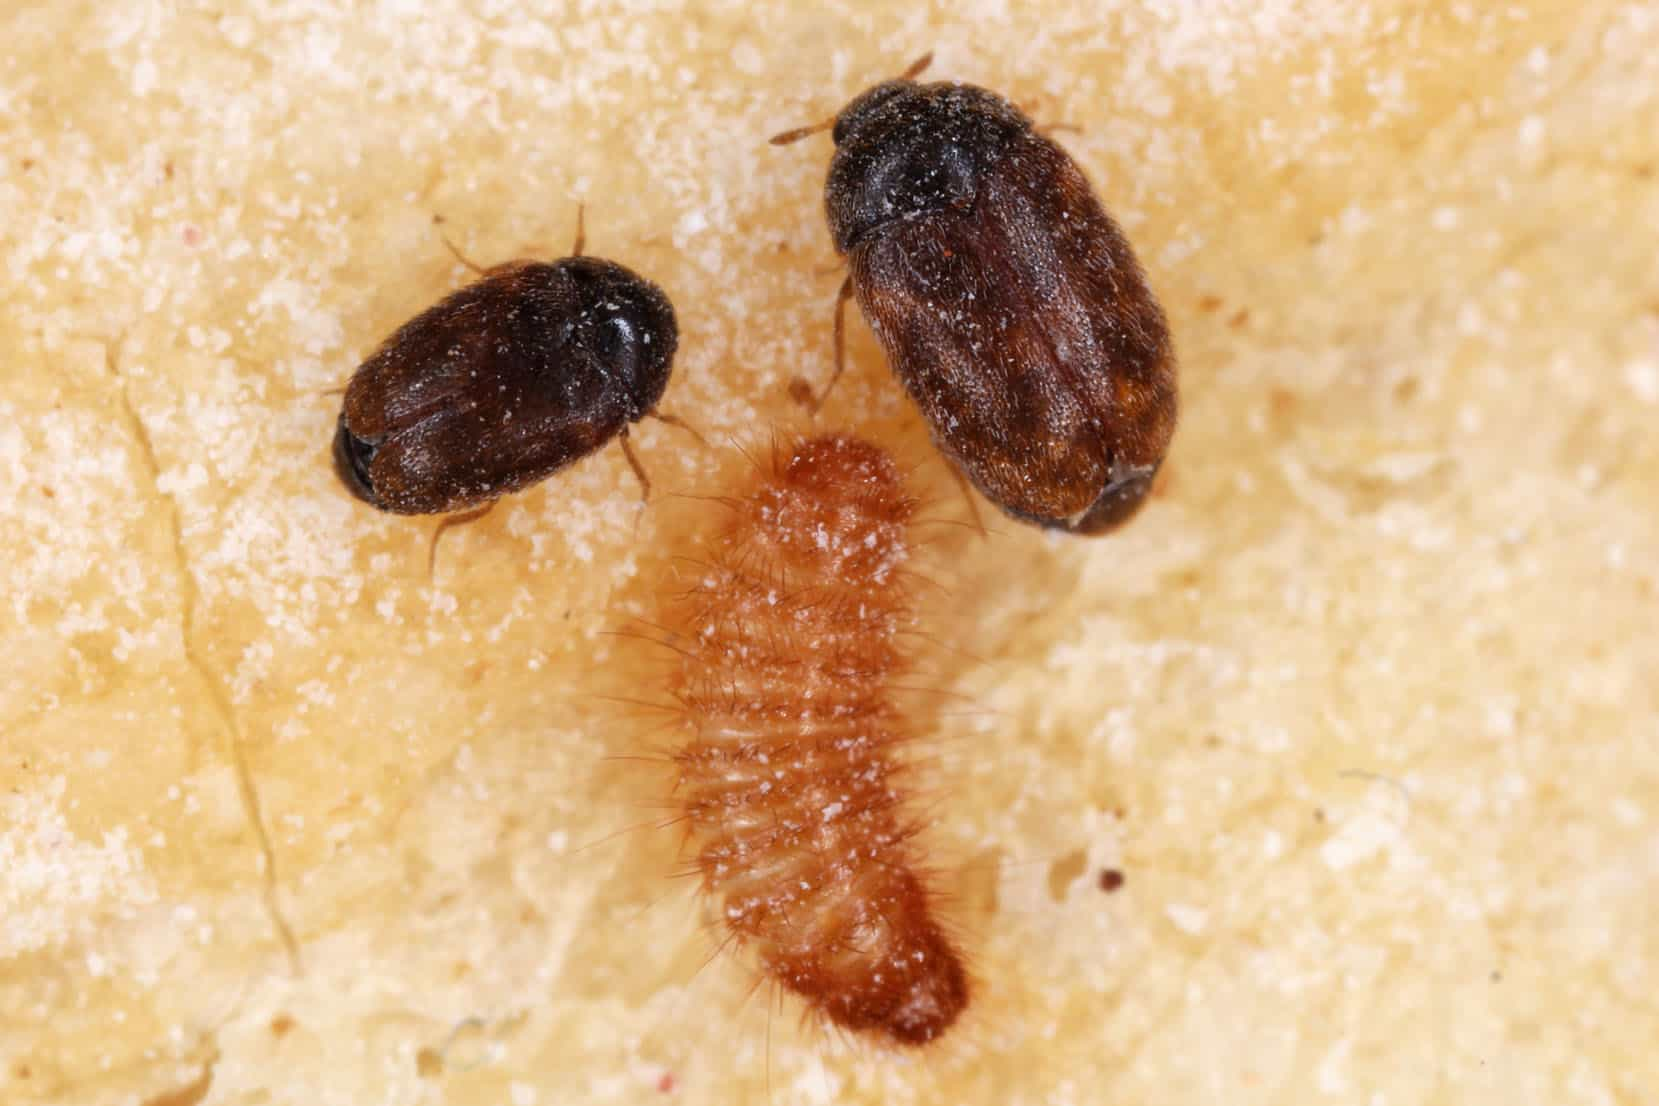 stages of Khapra beetle